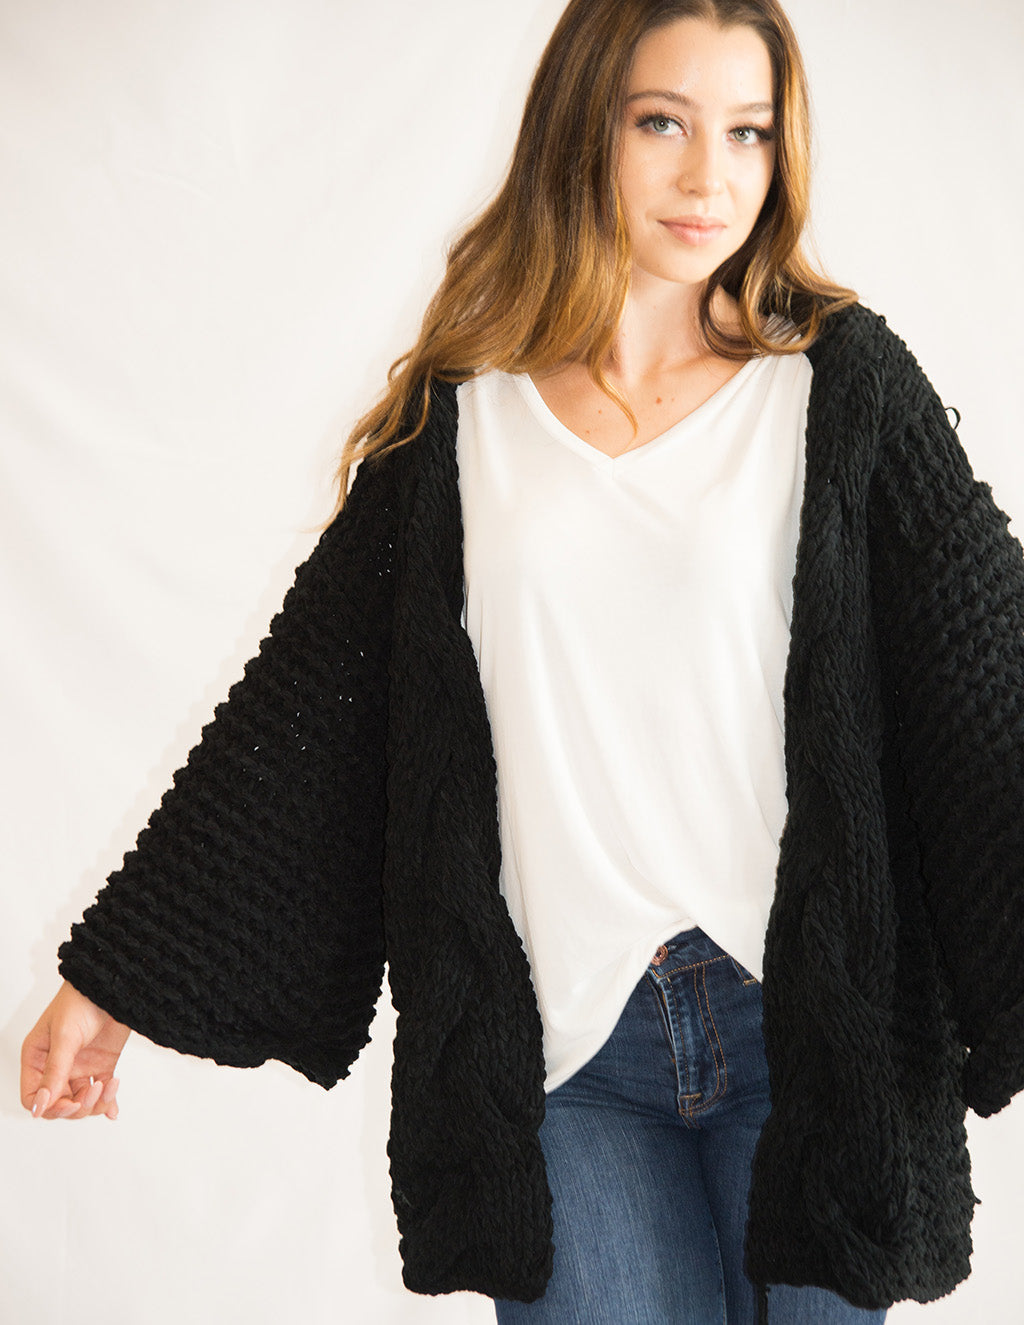 Night Flight Cardi